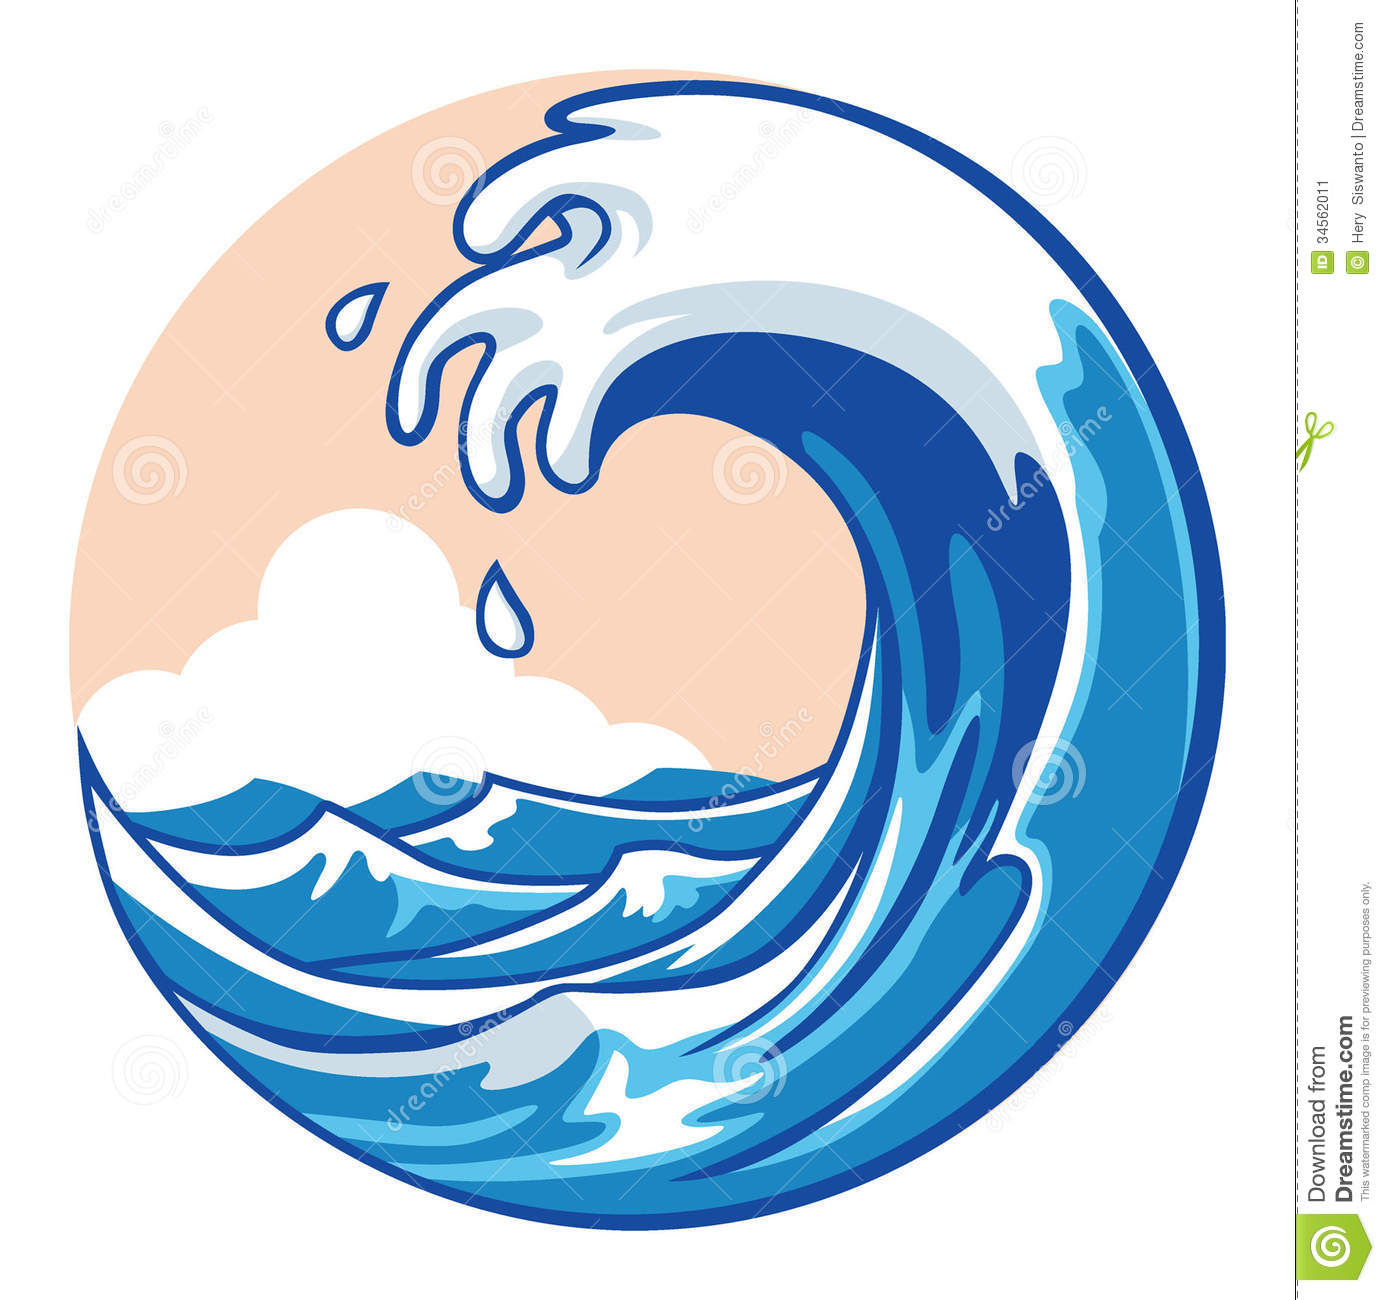 Tidal Wave Splash Clipart - Clipart Kid